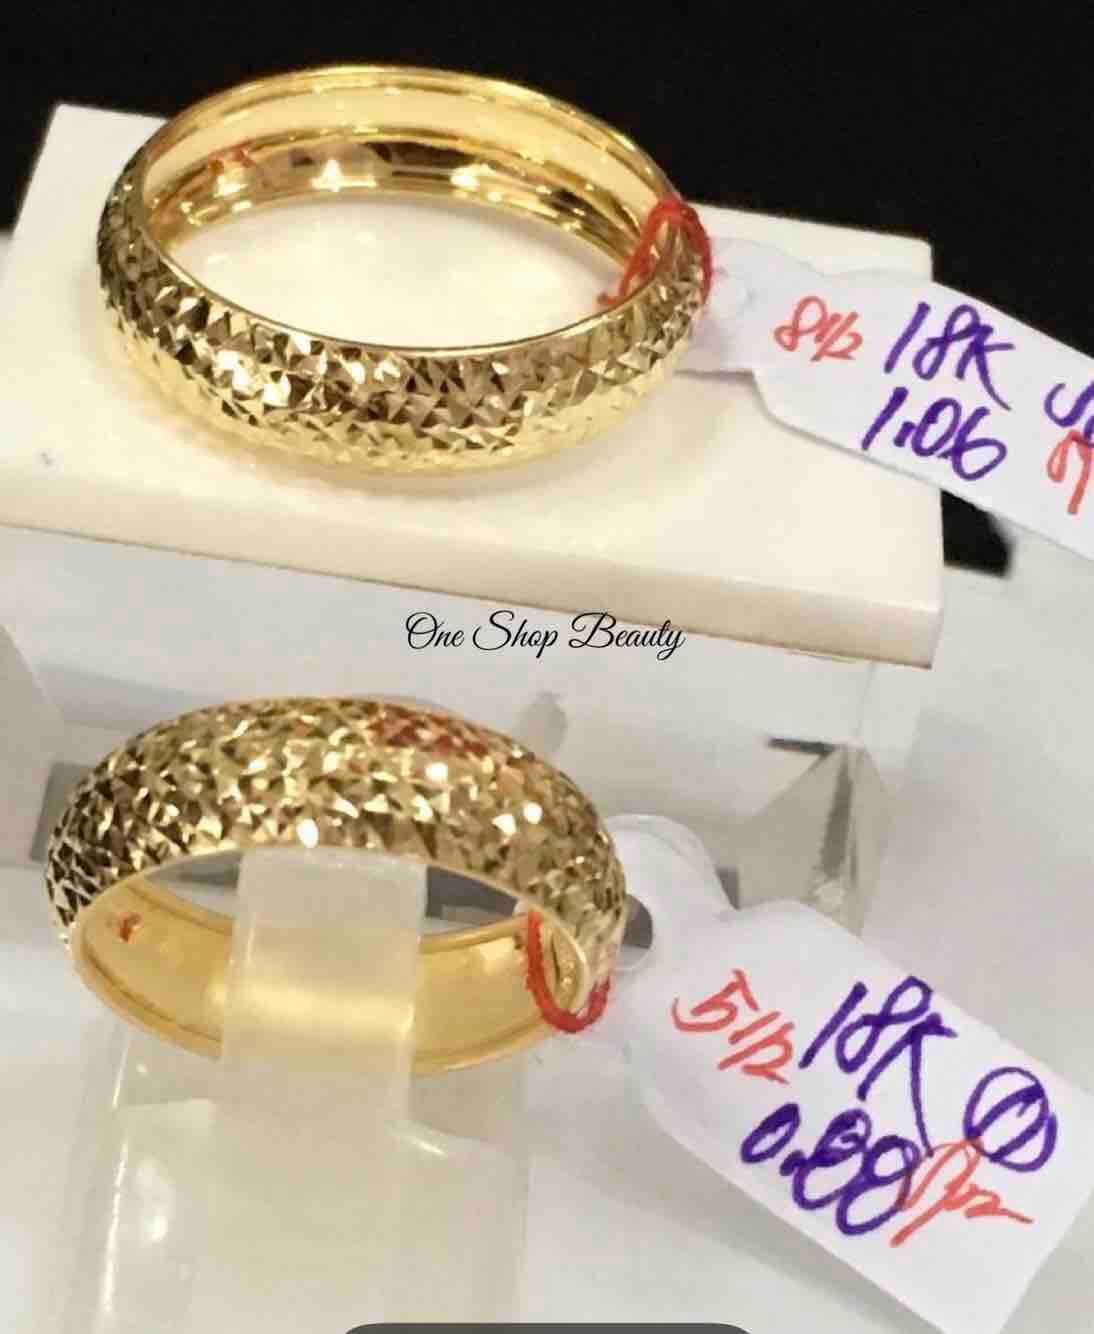 Gold Wedding Ring Price In Philippines In 2020 Wedding Rings Sets Gold Wedding Rings Prices Mens Wedding Rings Uk